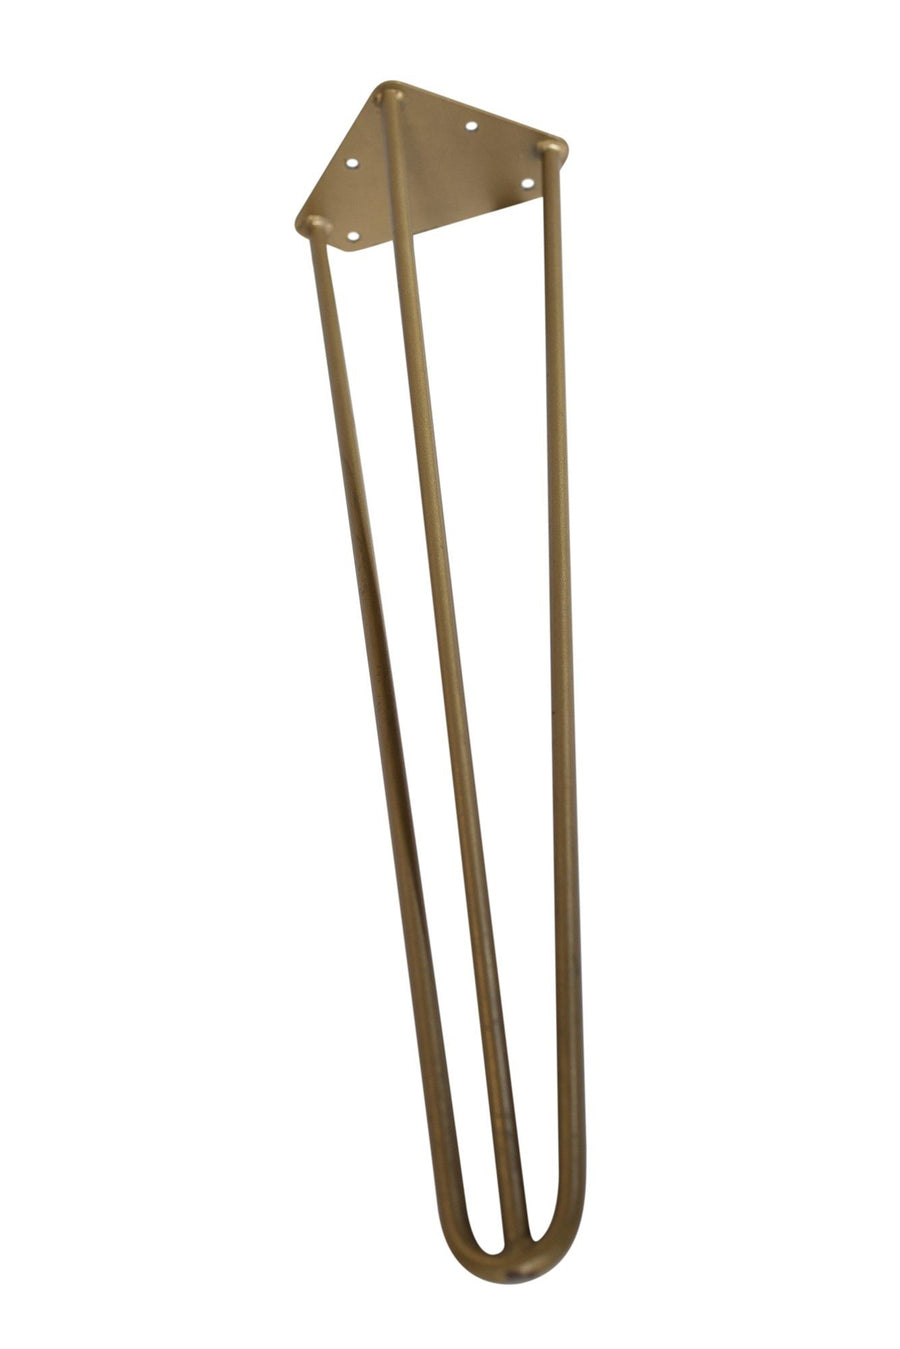 "Premium 3 Rod Hairpin Legs 1/2"" Diameter Brass - Set of 4-Rustic Deco Incorporated"